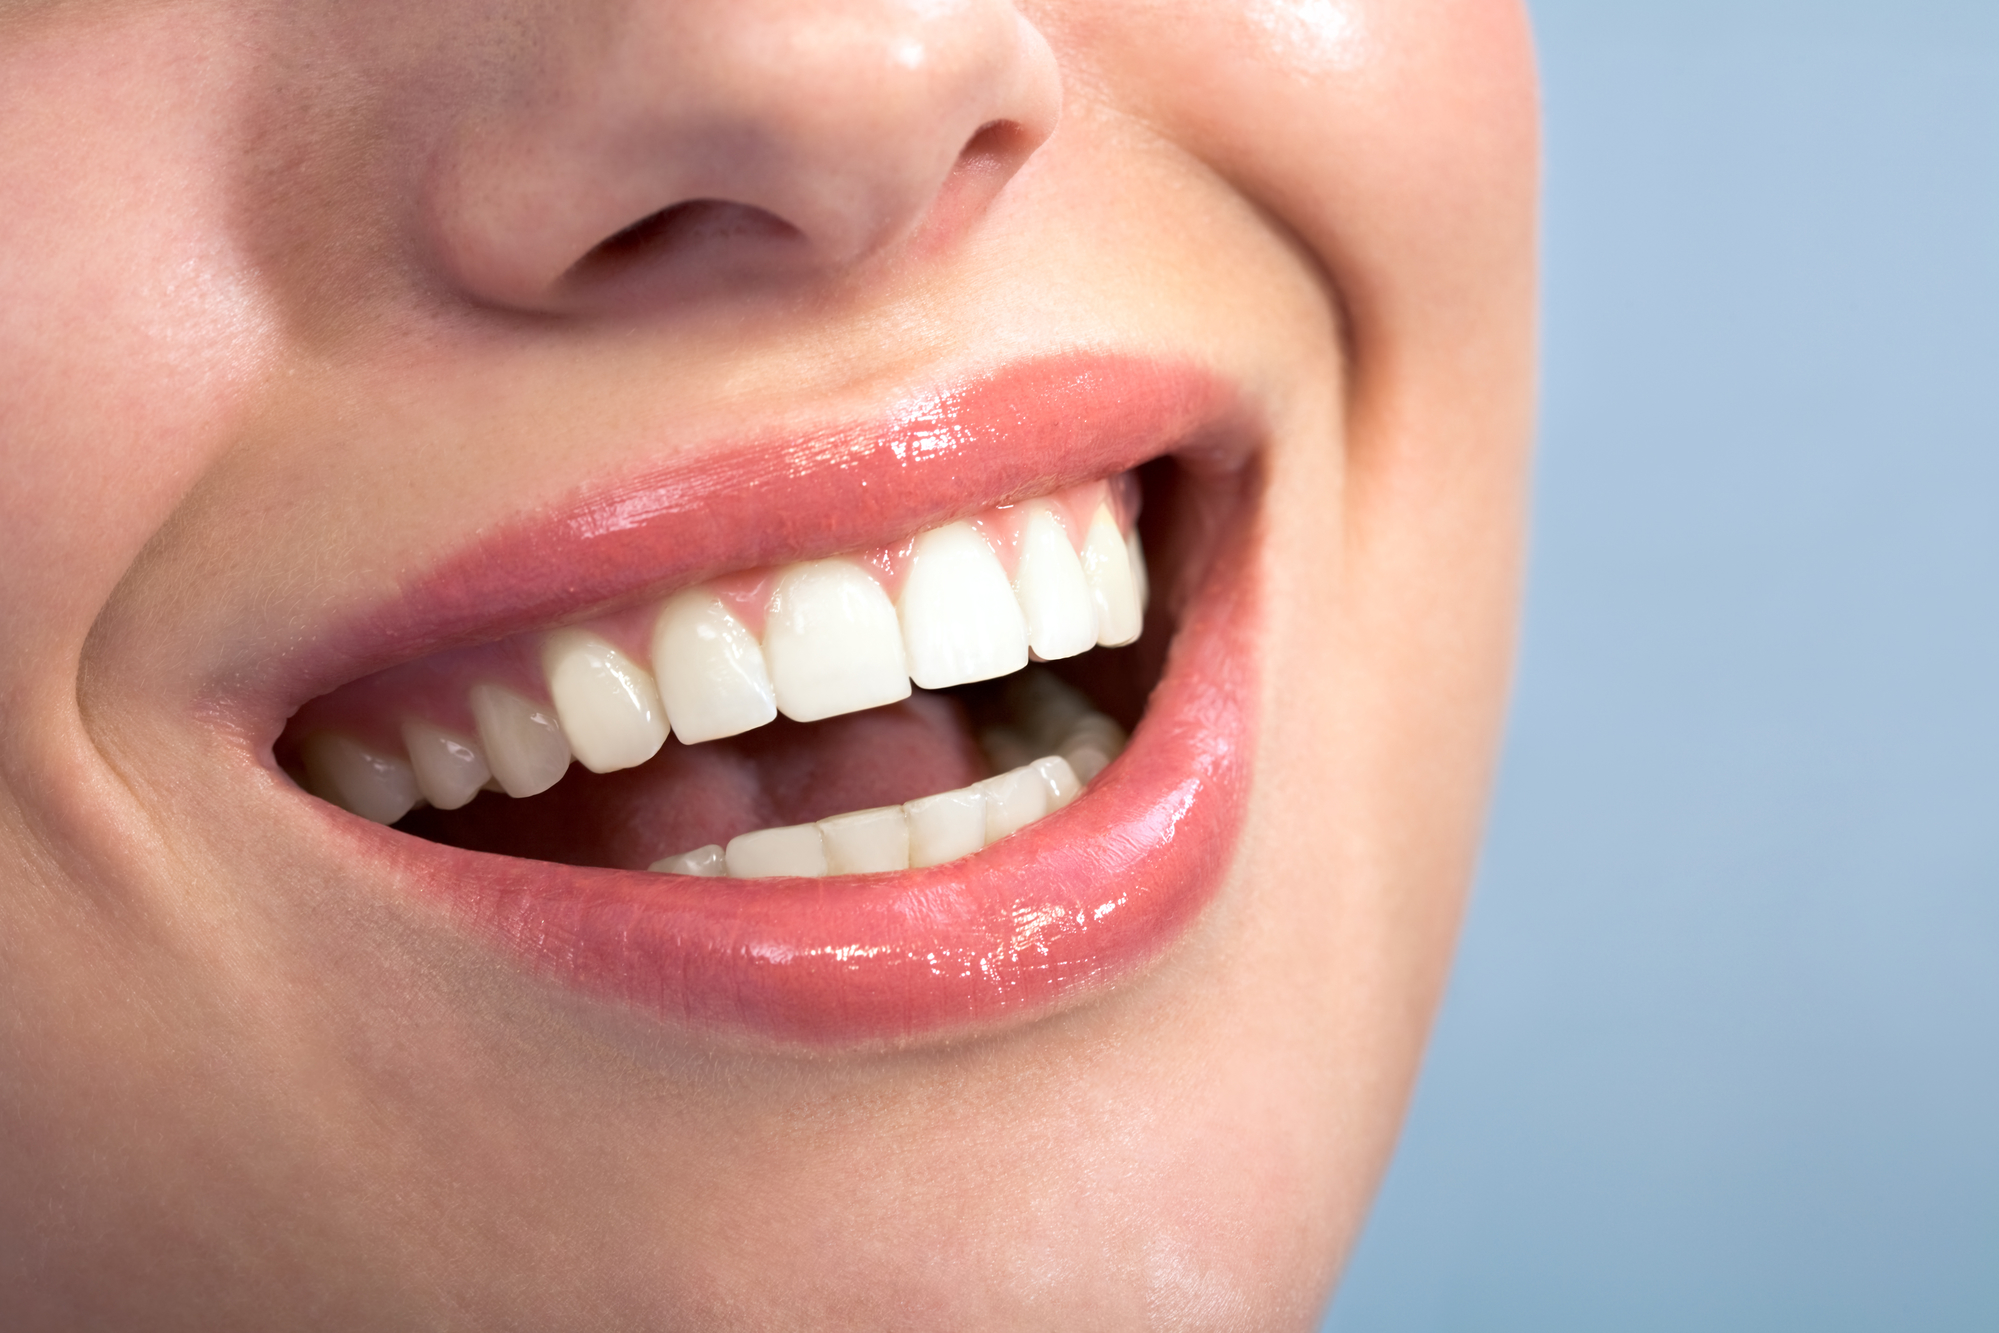 who can help me find good dental implants in pembroke pines?